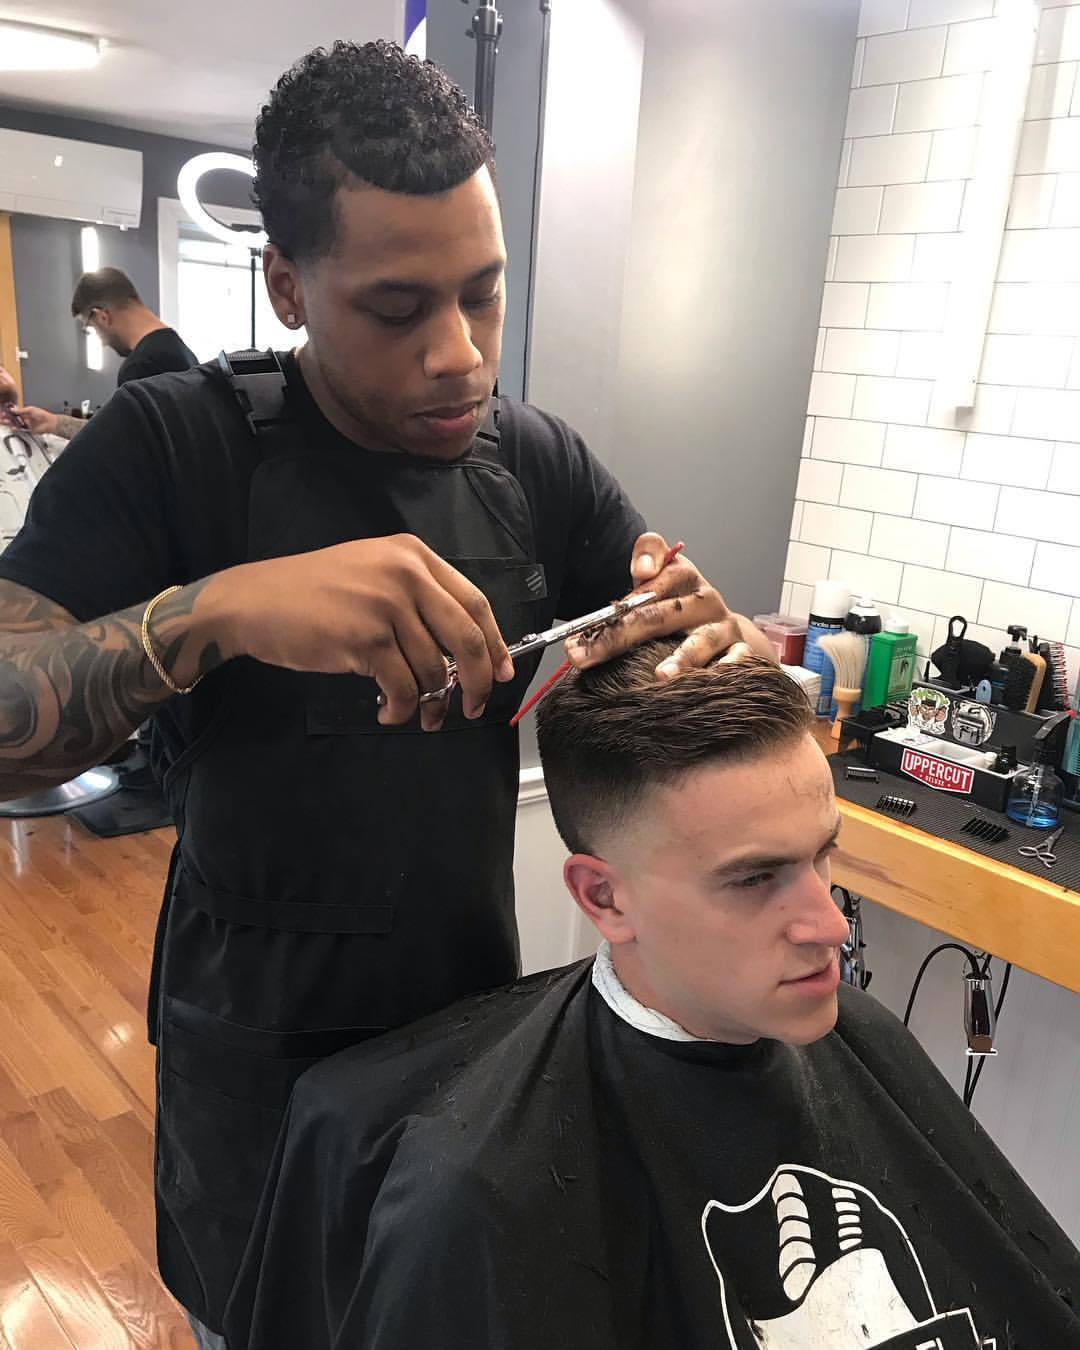 Black Label Barbershop Malden : black, label, barbershop, malden, Black, Label, Barbershop